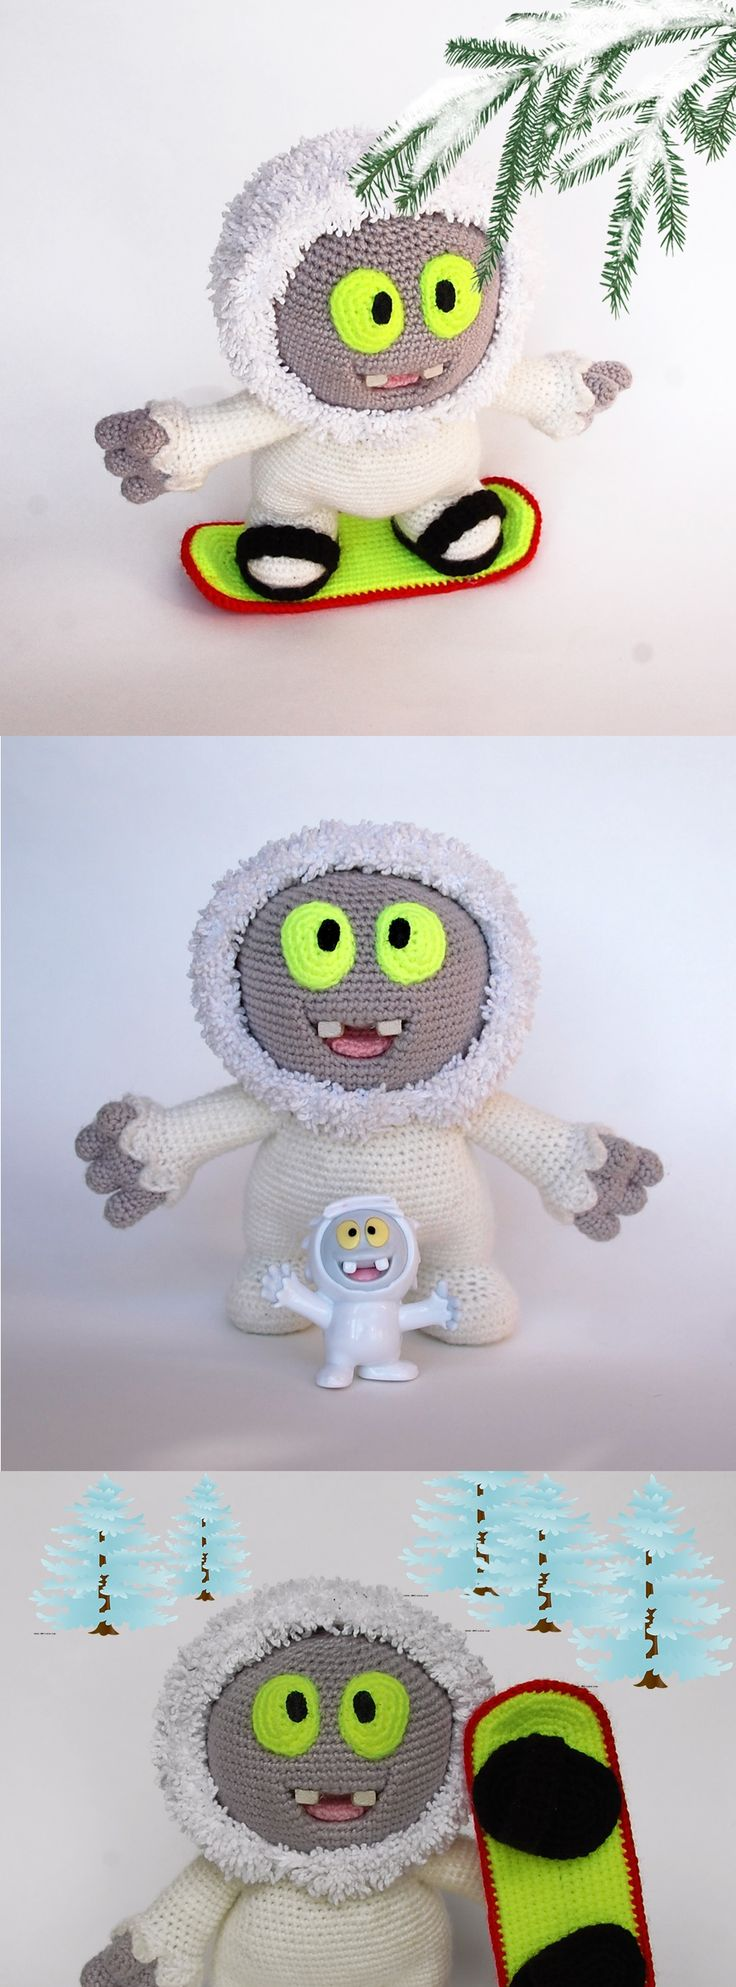 Yeti Moonik. Crochet amigurumi BigFoot toy. Crochet yeti kinder. Kinder surprise toy. Do it yourself. Amigurumi pattern by Pichufina Elena #InspiredCrochetToys